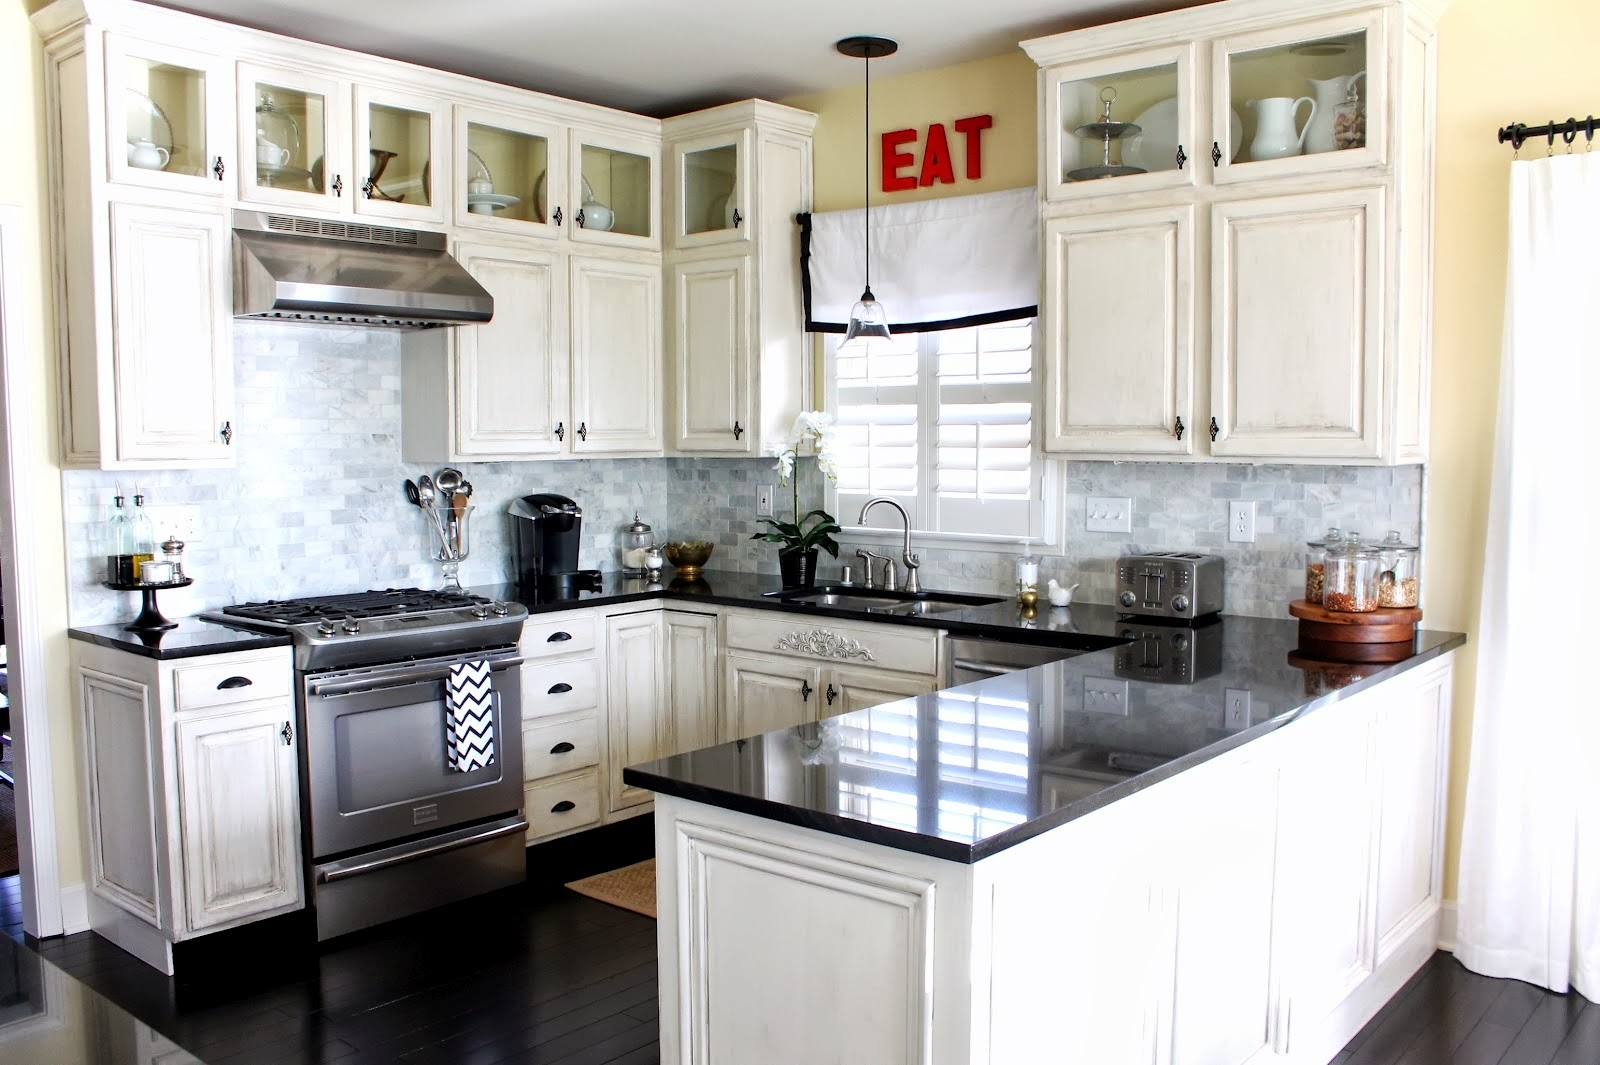 Permalink to Small Kitchen White Cabinets Black Countertop